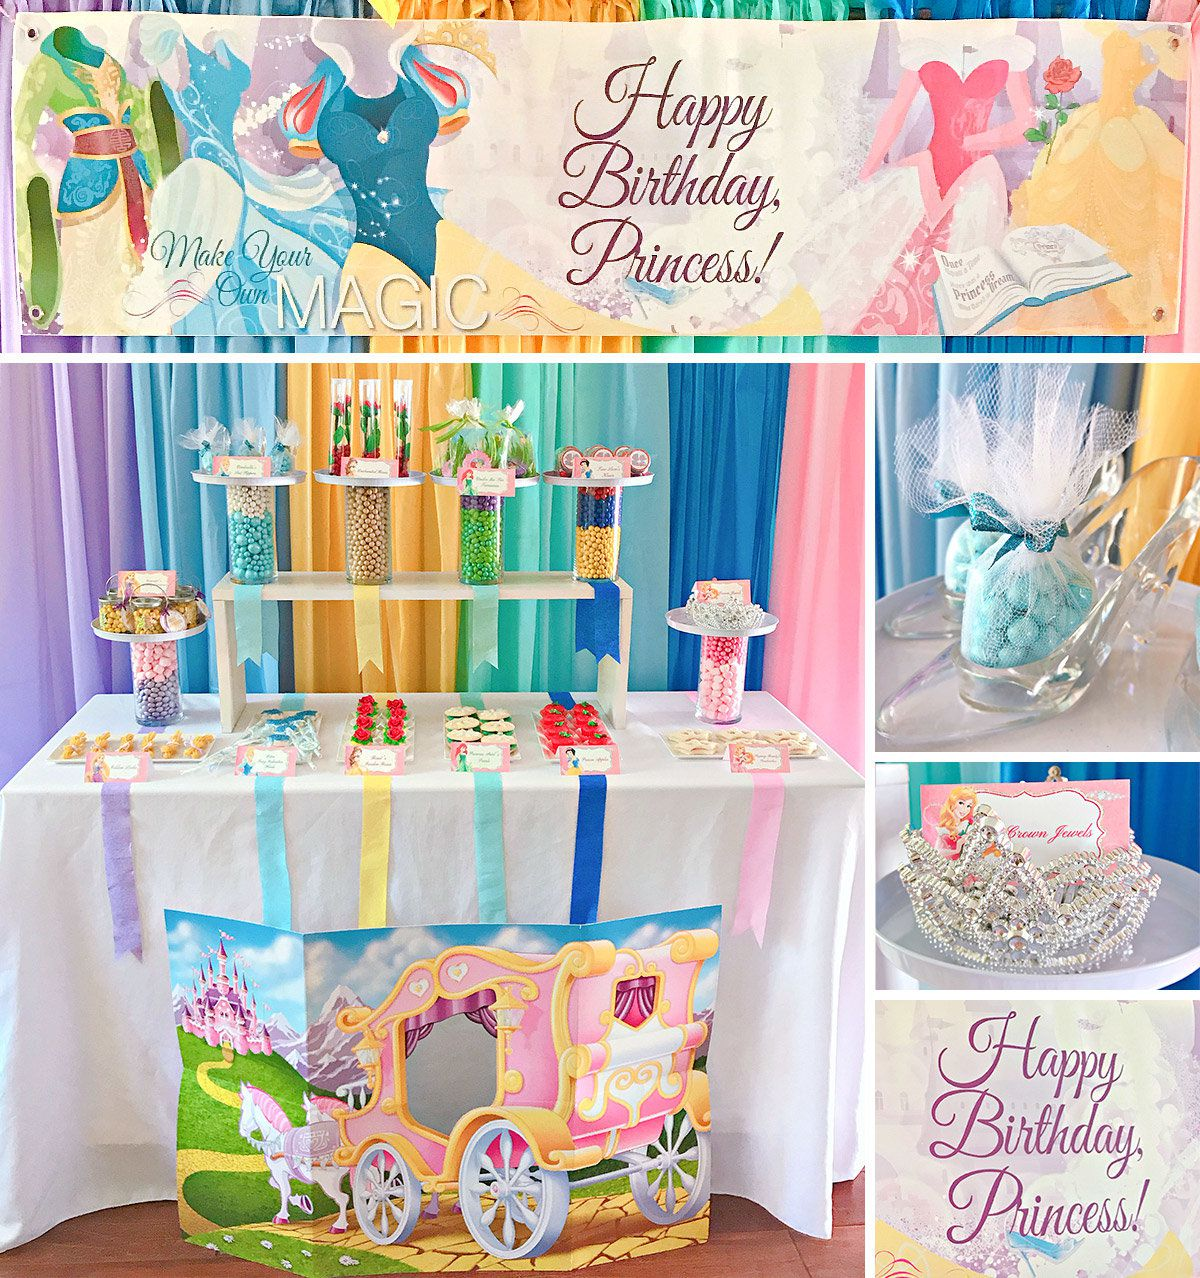 Disney Princess Party Decorations